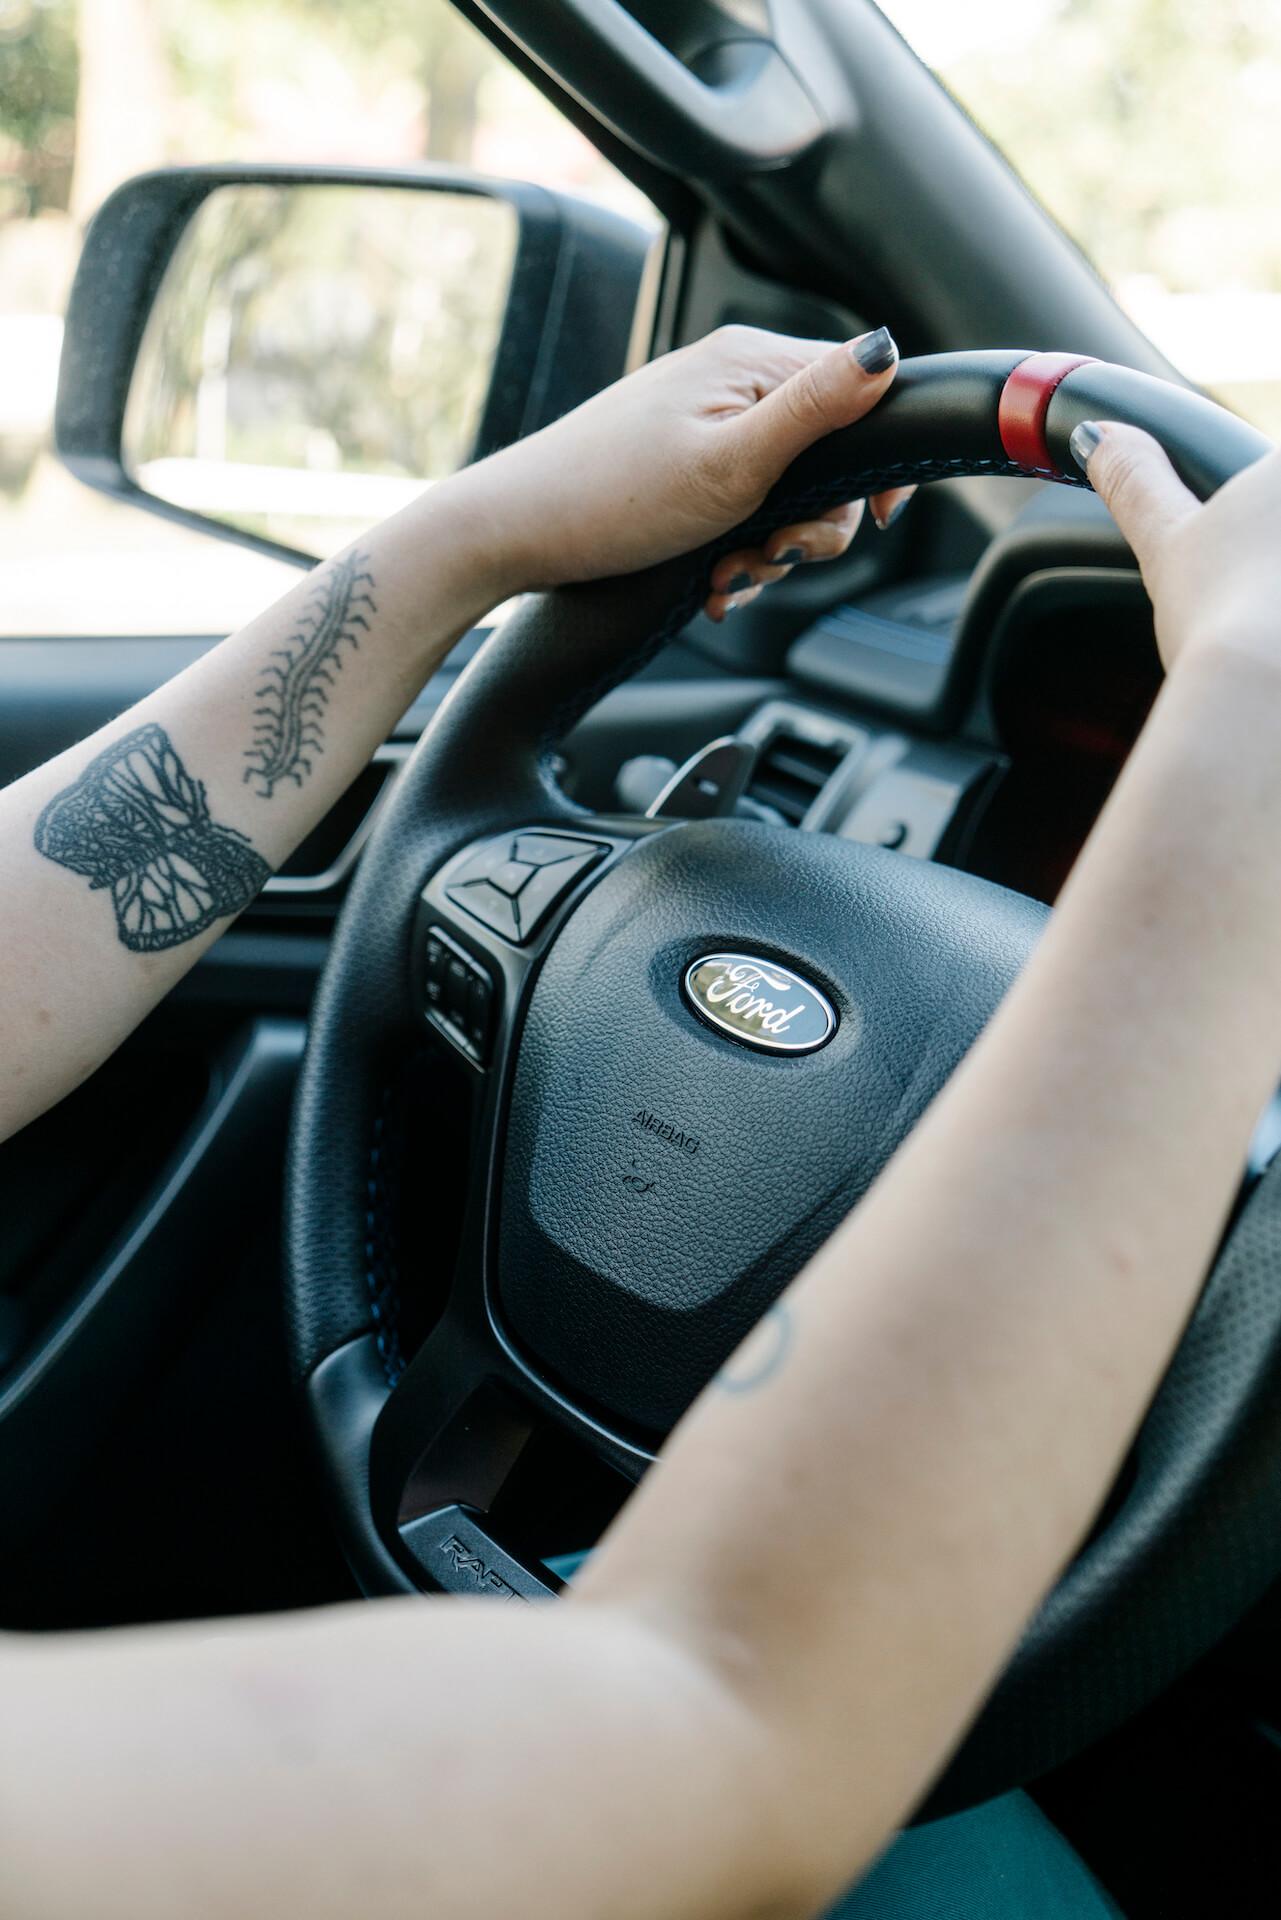 A woman with tattoos grips the steering wheel of a Ford Raptor